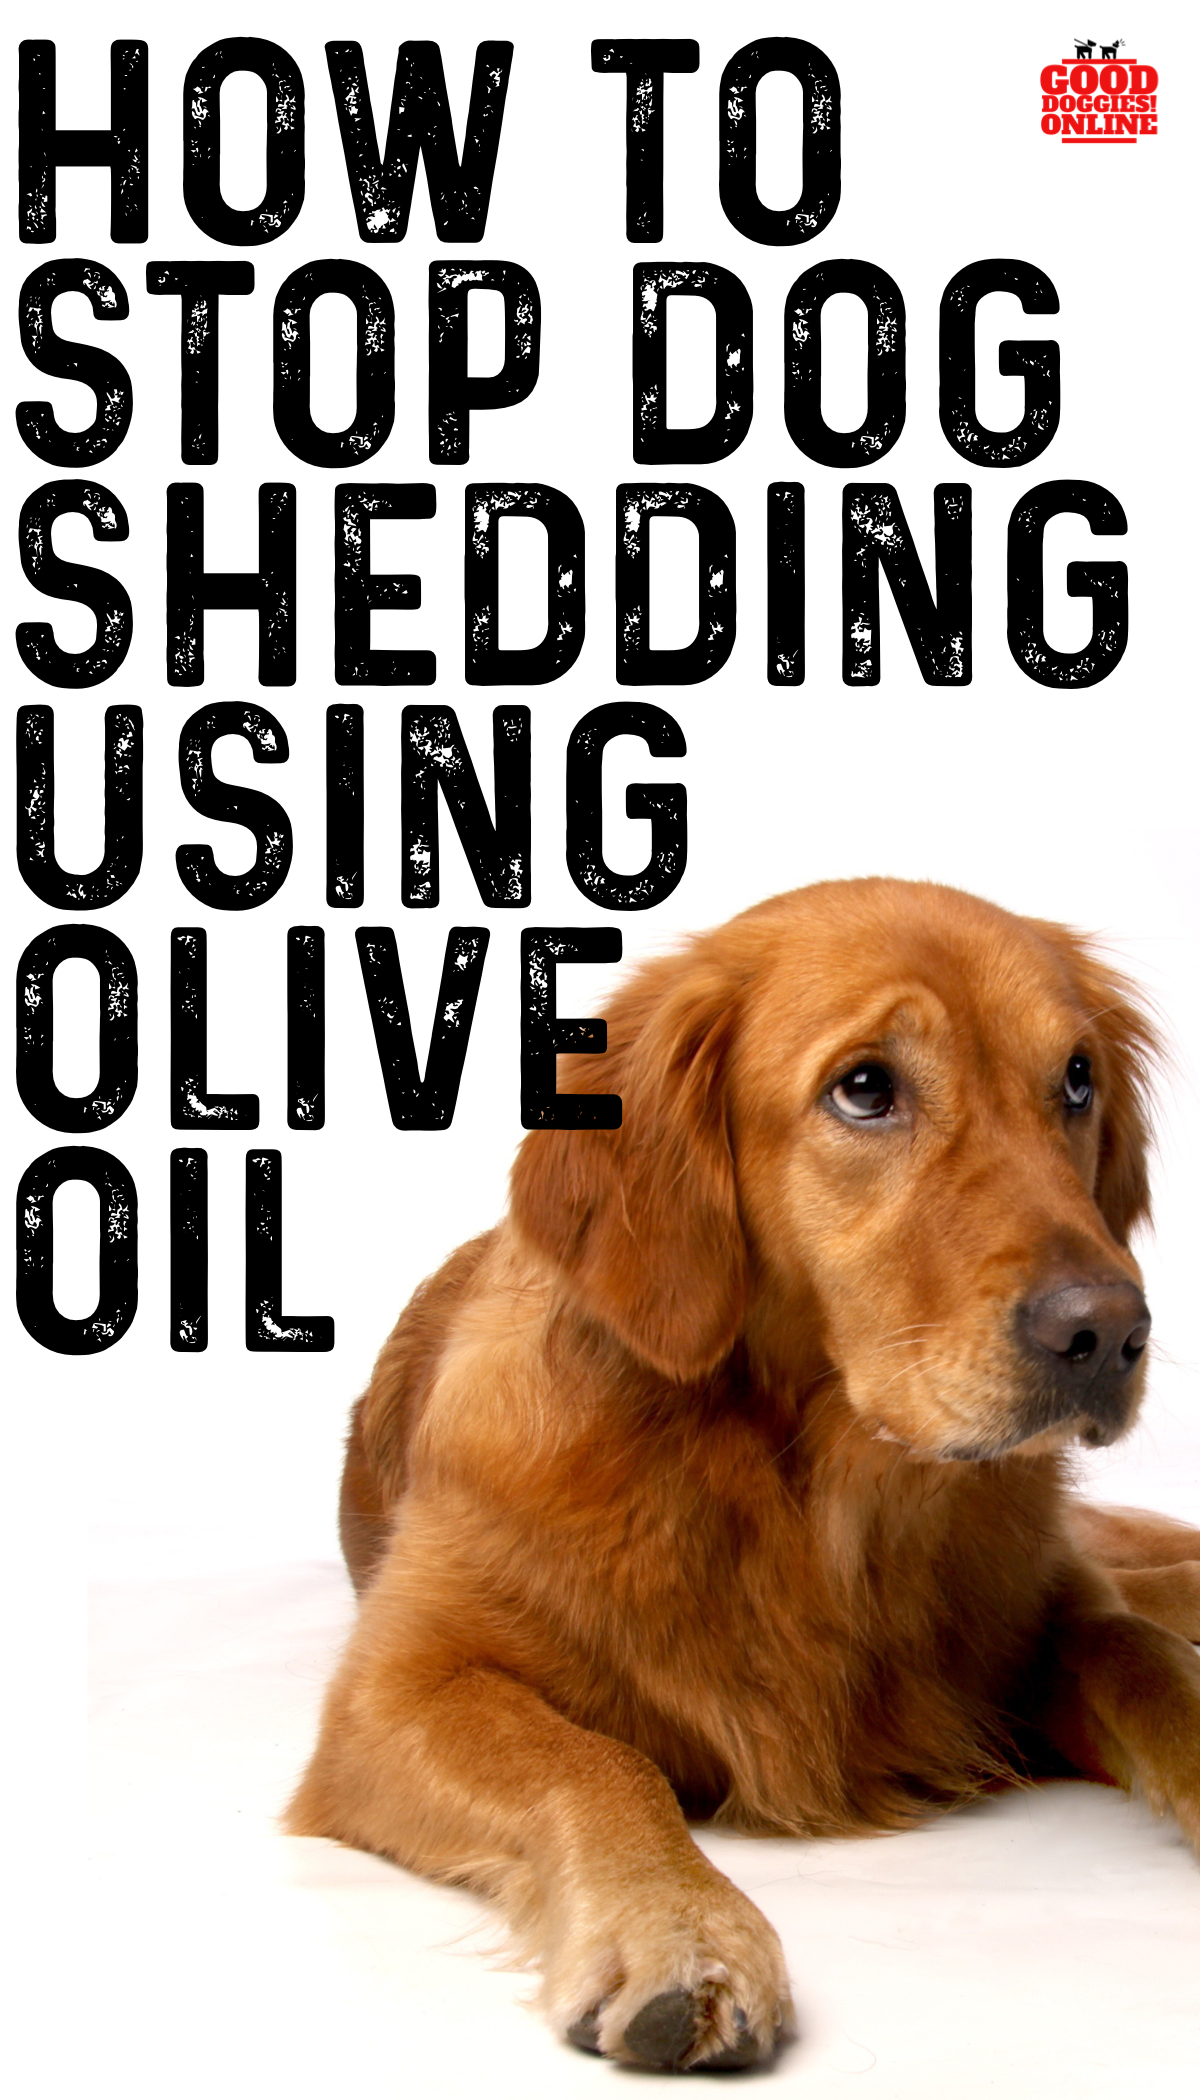 How To Stop A Dog From Shedding Using Olive Oil Good Doggies Online Stop Dog Shedding Dog Remedies Dog Shedding